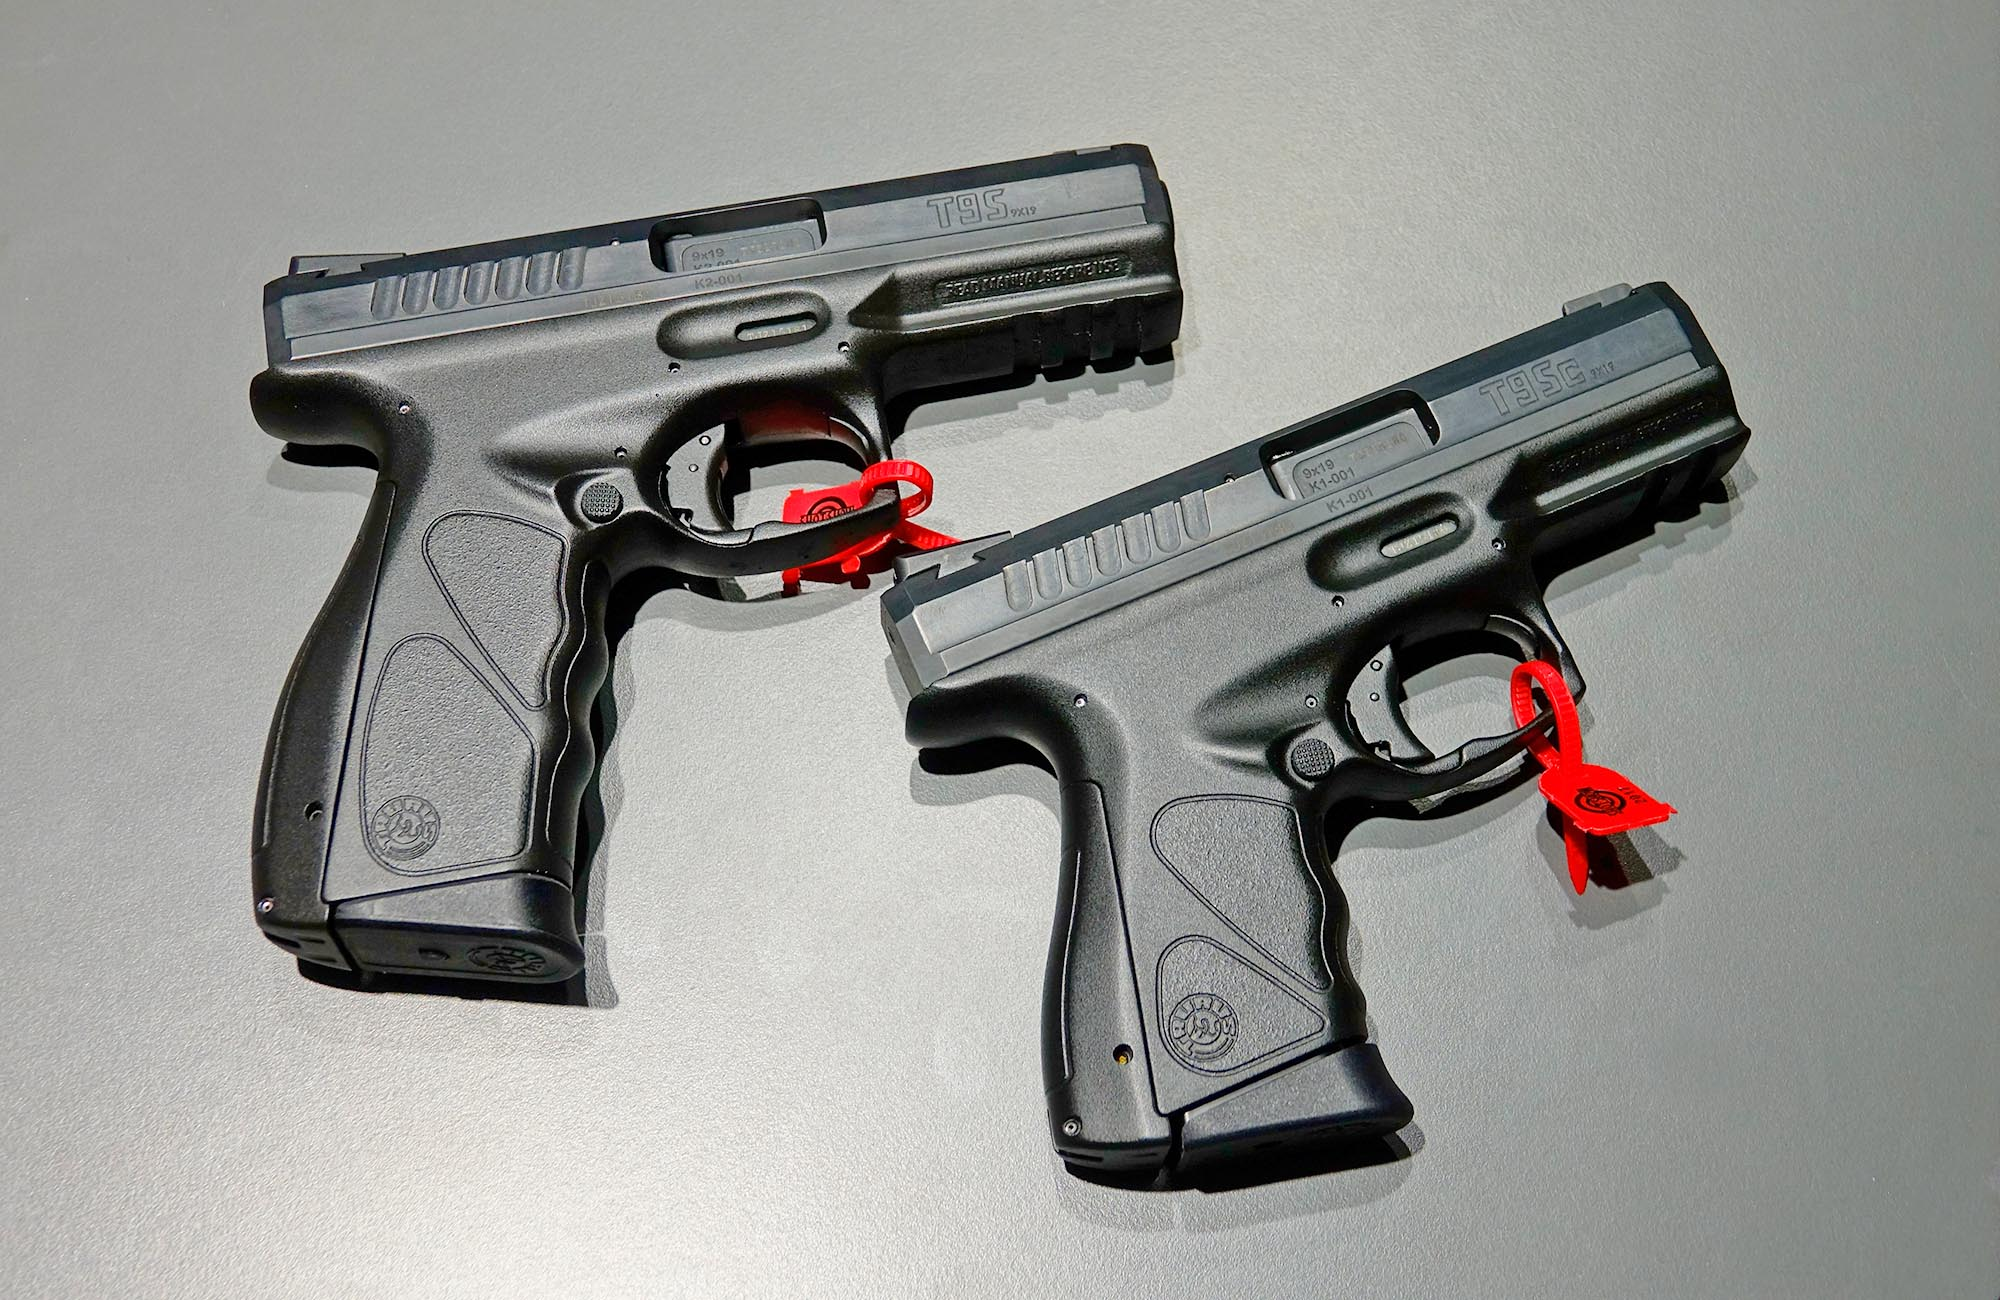 Taurus TH and TS pistols | GUNSweek com